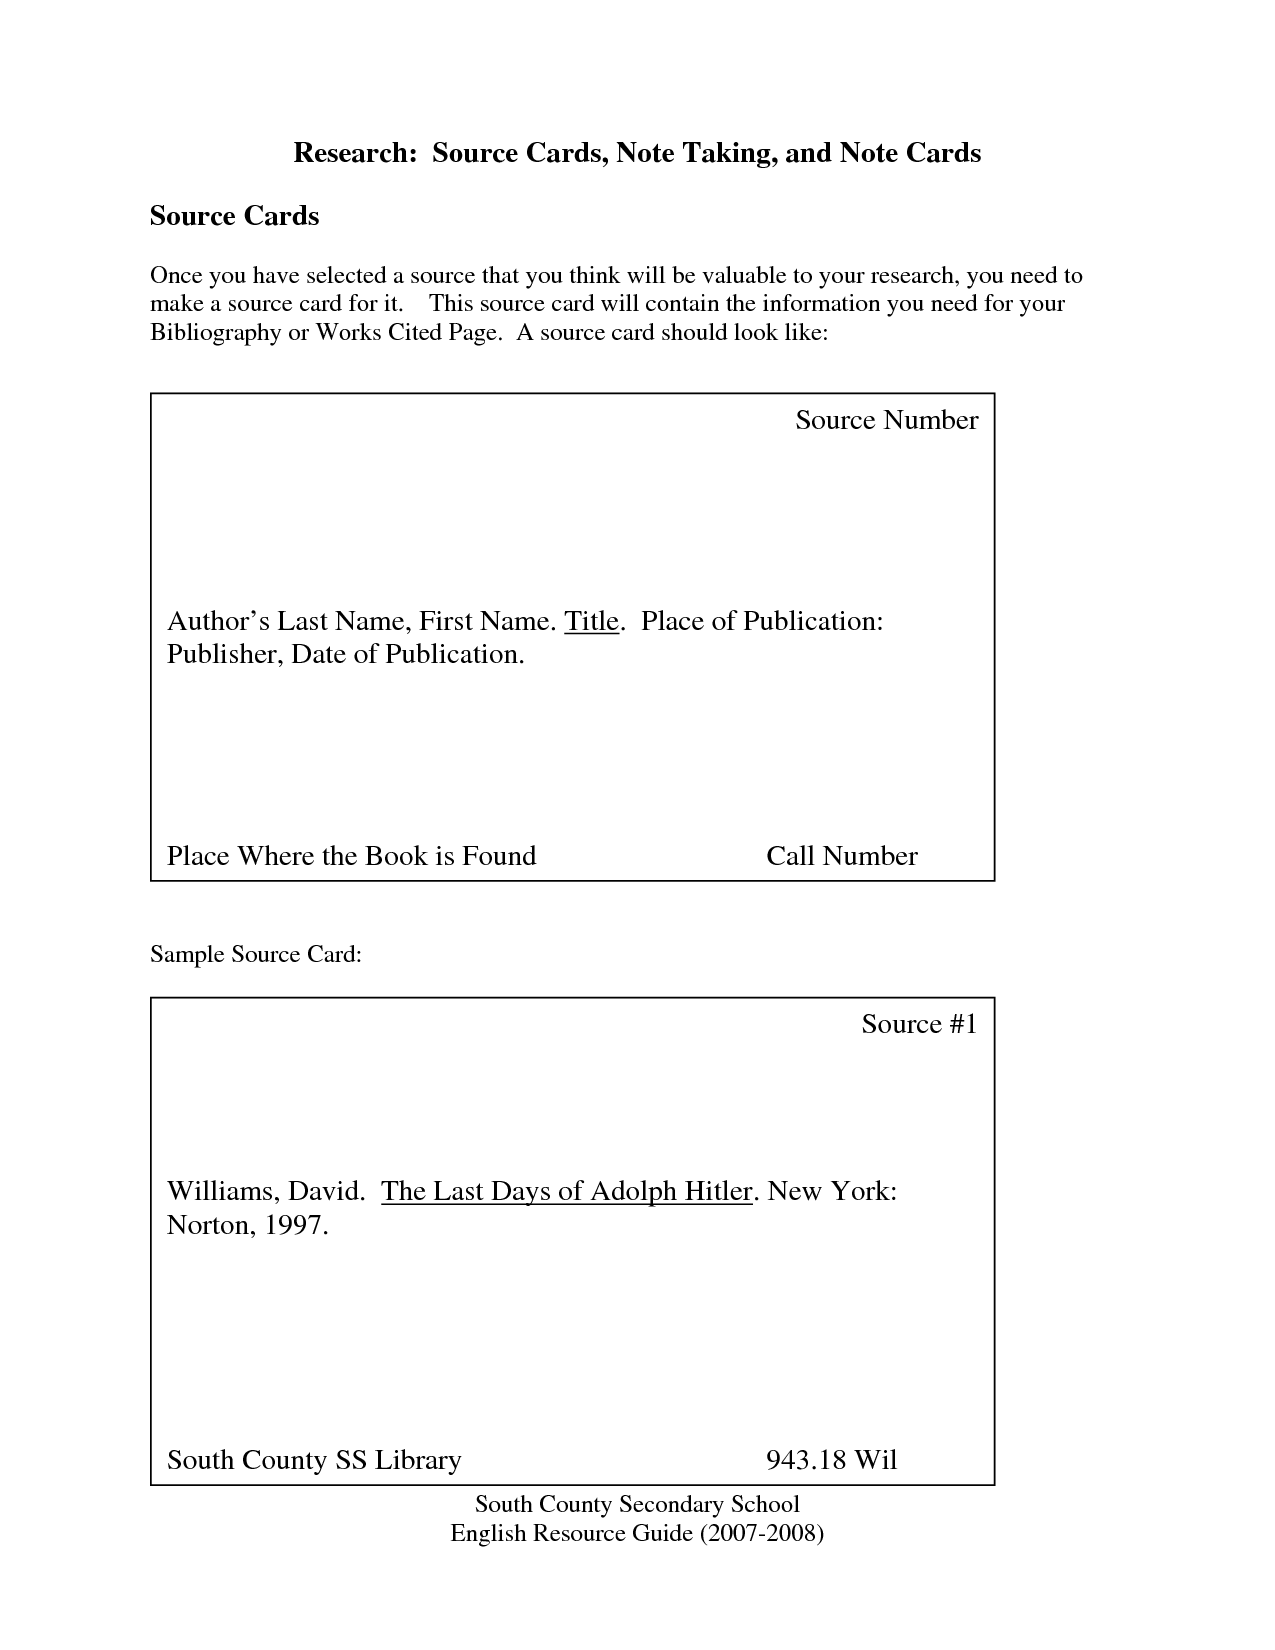 016 Research Paper Note Card Templates 442160 Cards For Excellent Papers Template Notecards Mla Format Full